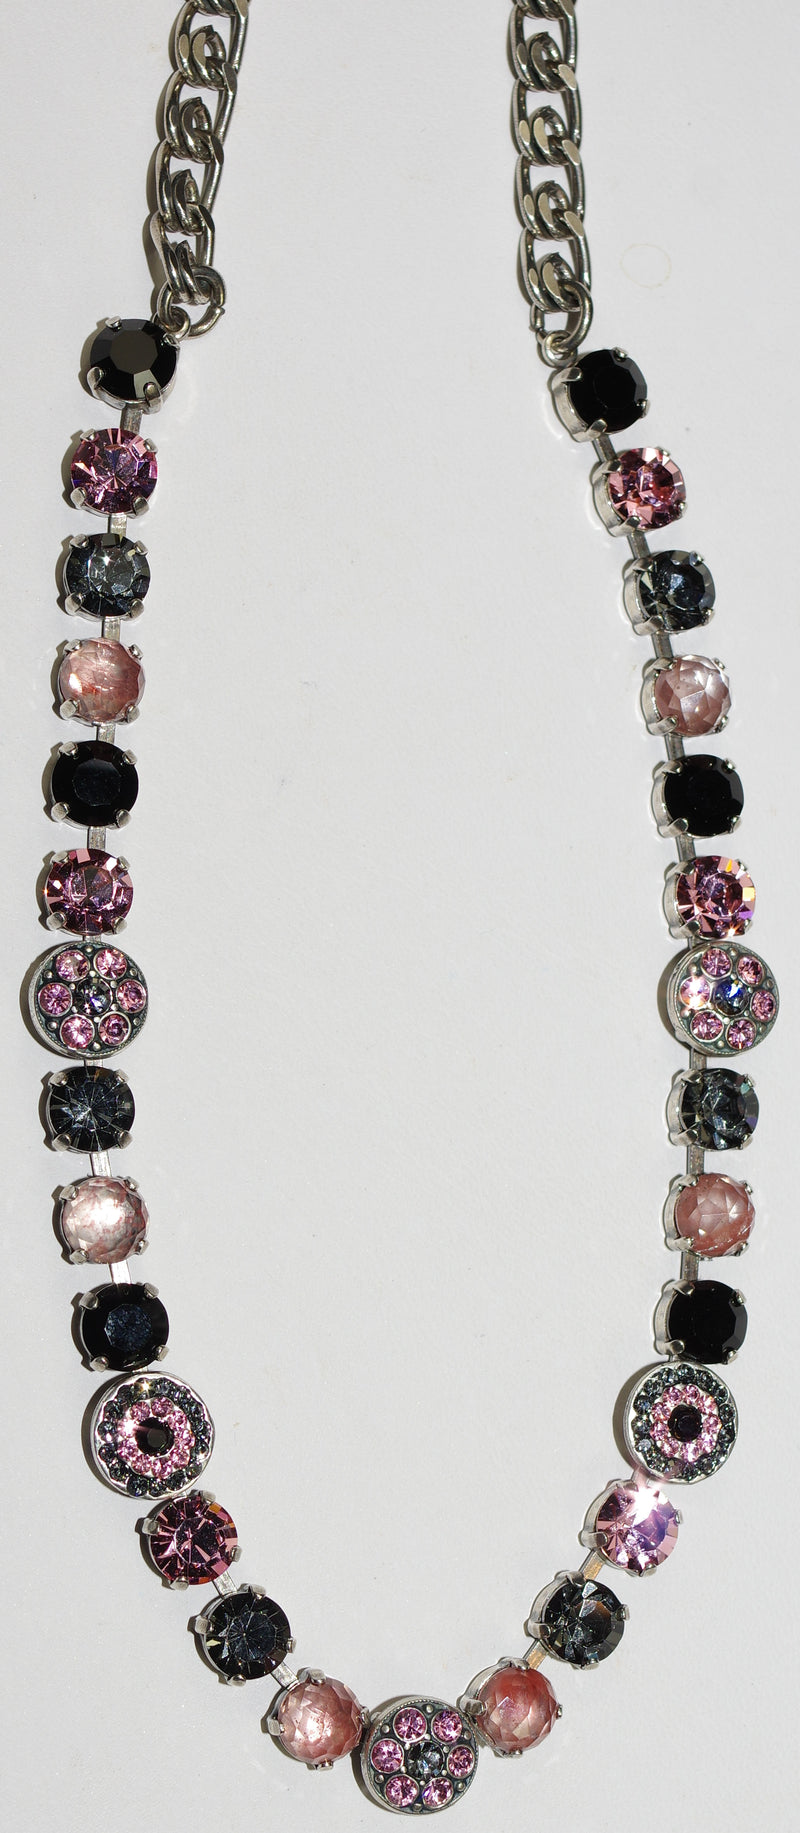 "MARIANA NECKLACE PEPPERMINT: black, pink, grey, mineral stones in silver setting, 17"" adjustable chain"